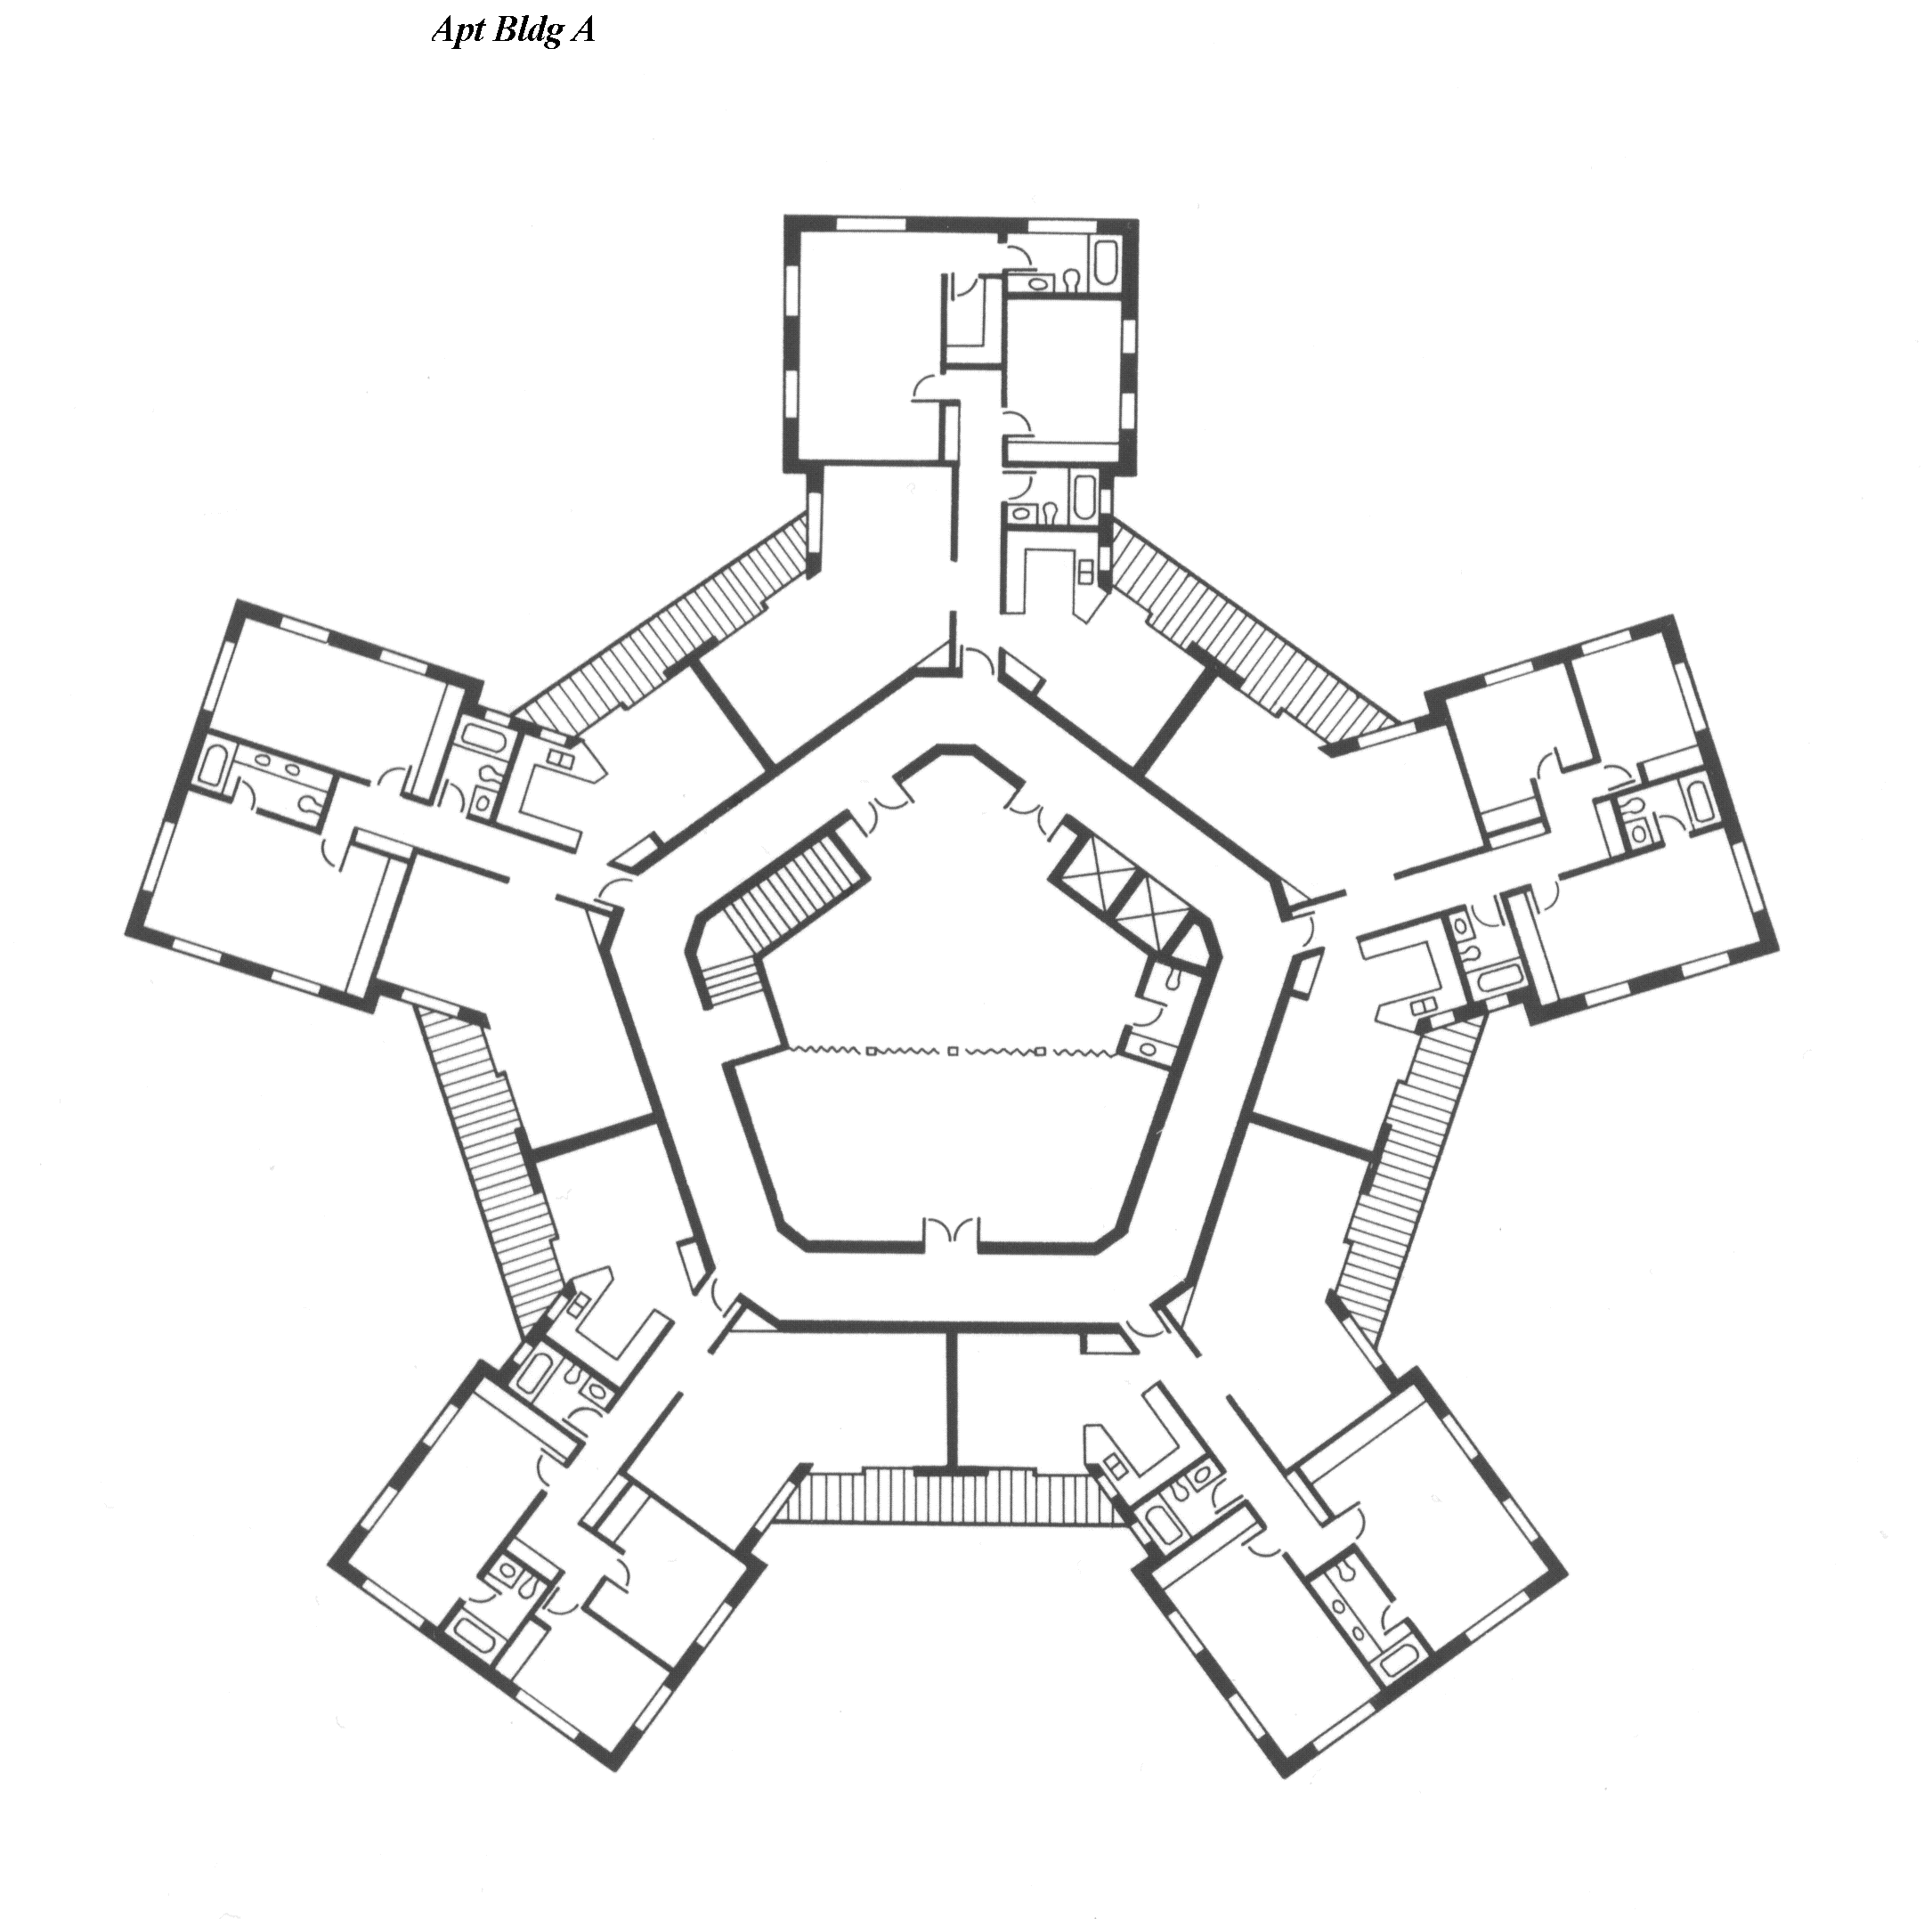 Drawings of various microcommunity mc configurations for Apartment building blueprints